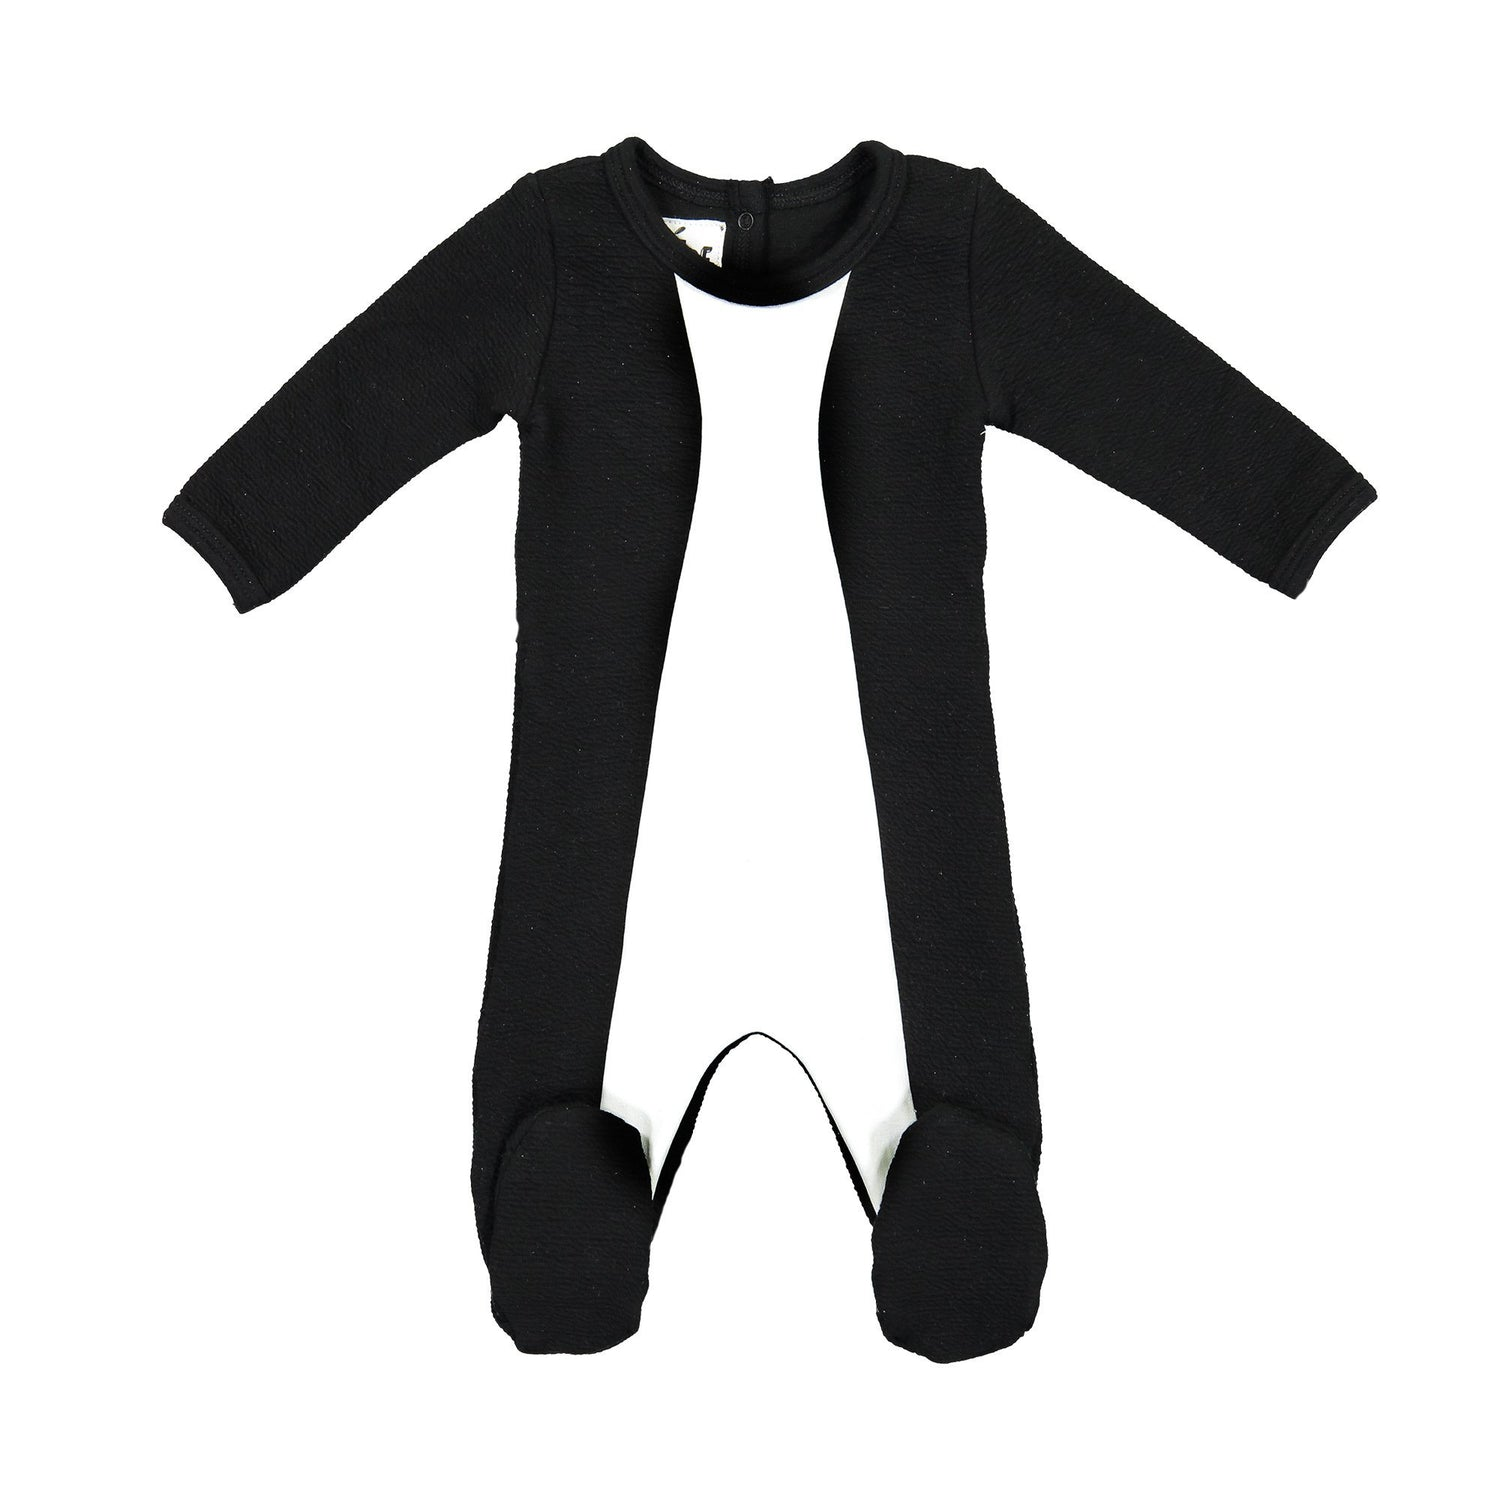 Texture Mix Footie Maniere Accessories Black 3 Months